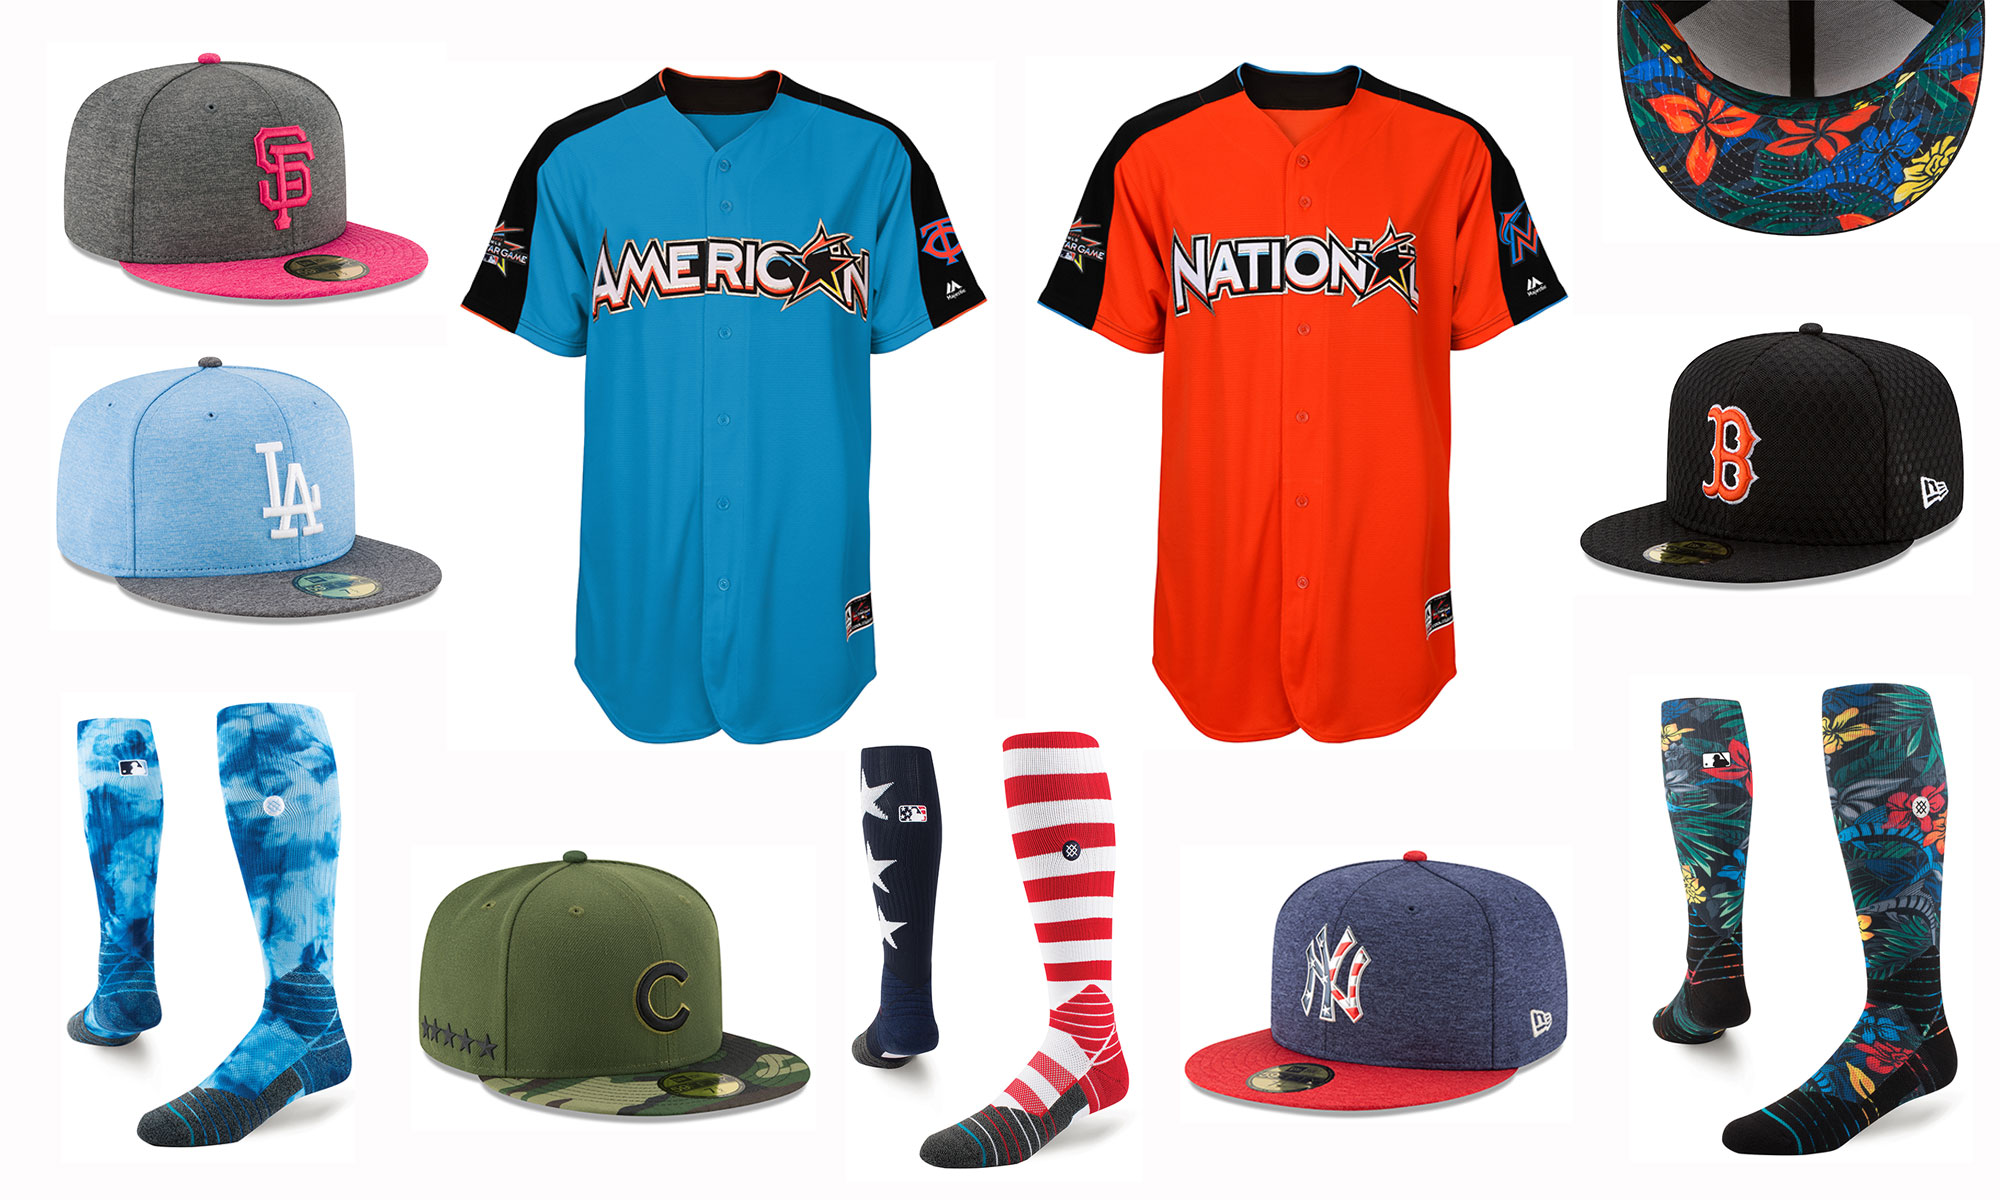 ecbd229f Various holiday and special event uniforms for the 2017 baseball season.  (MLB)